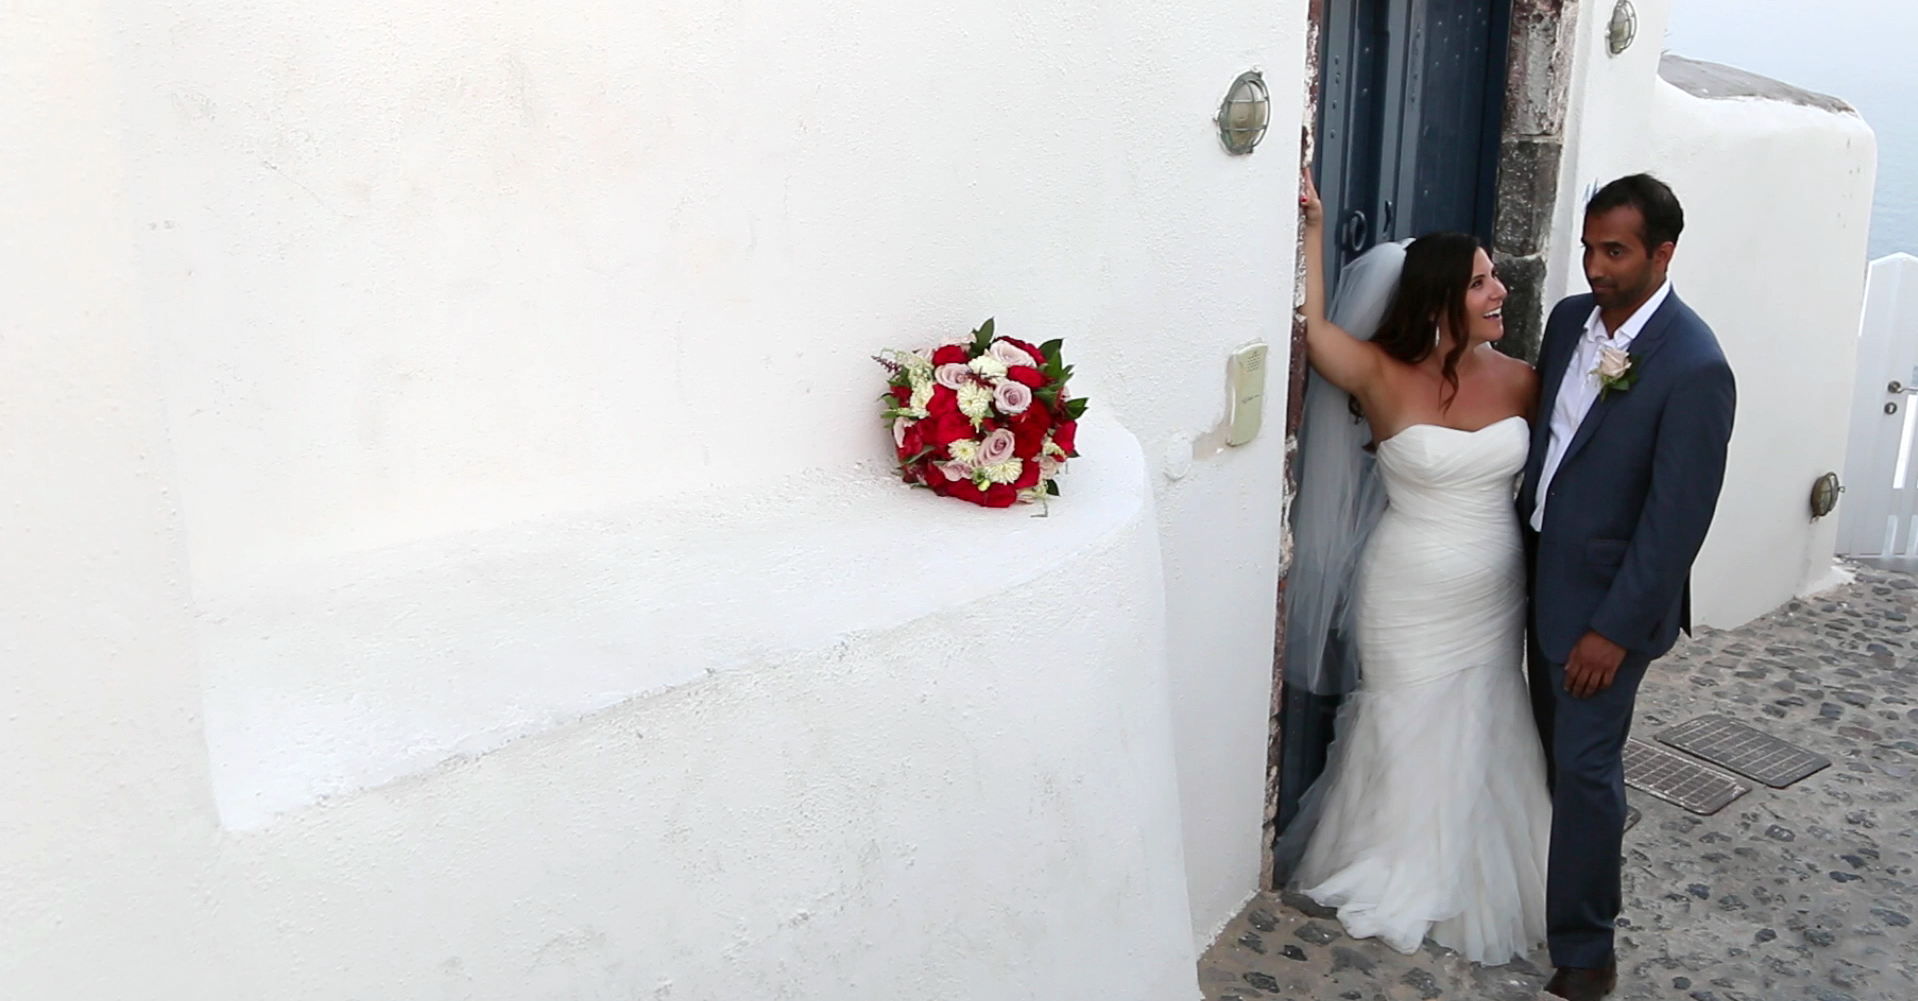 Wedding Videography - Santorini Photo Shoot